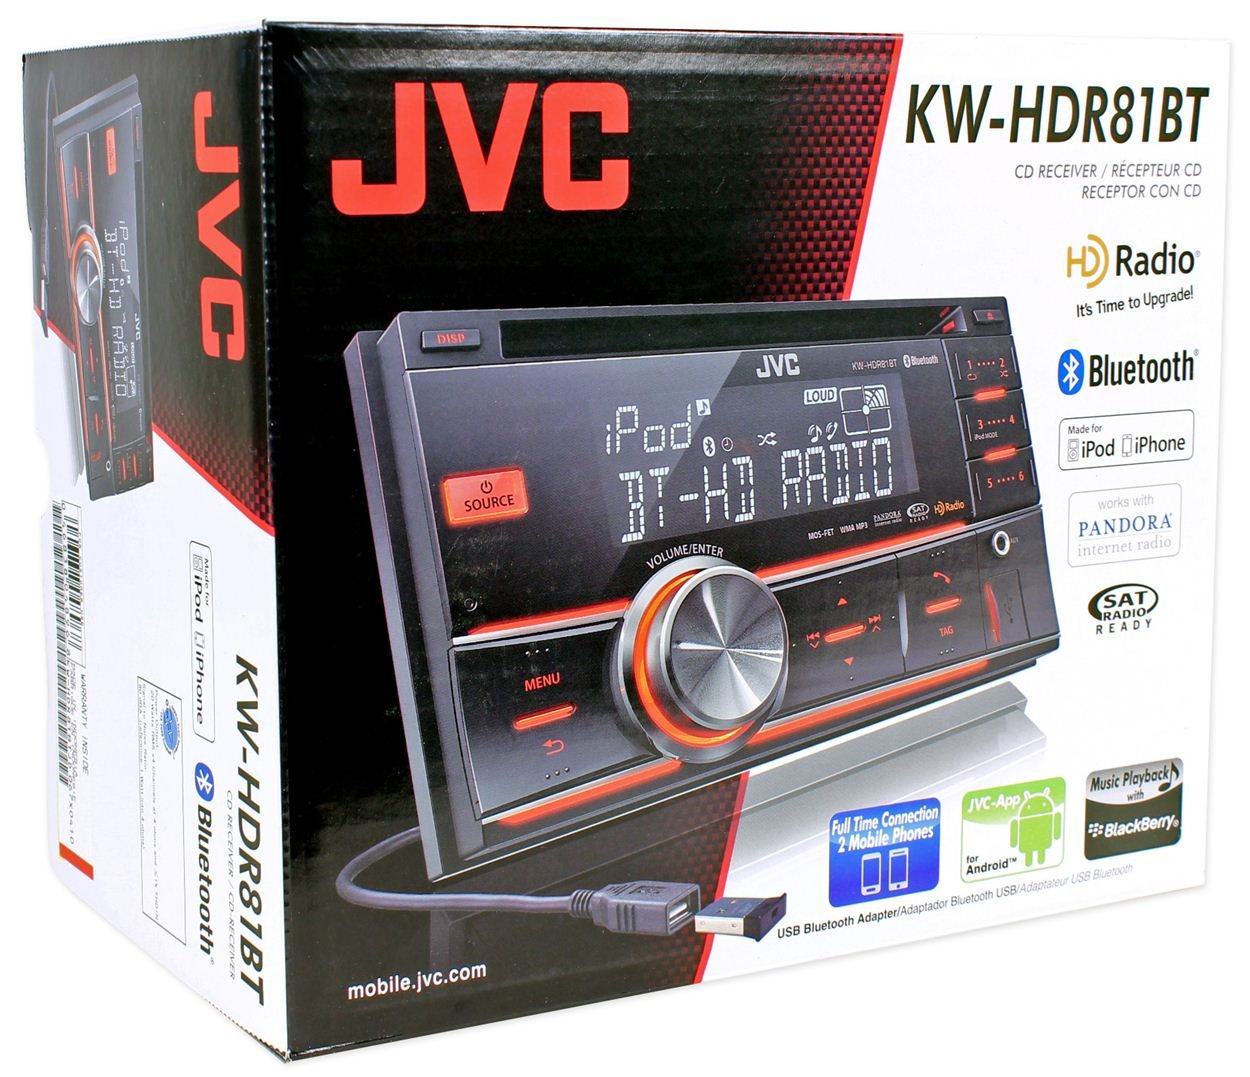 New Jvc Kw Hdr81bt Double Din Cd Usb Aux Car Receiver 1761 Radio Wiring Harness For Toyota 87up Power 4 Speaker Shopstak Player Bluetooth Stereo Electronics